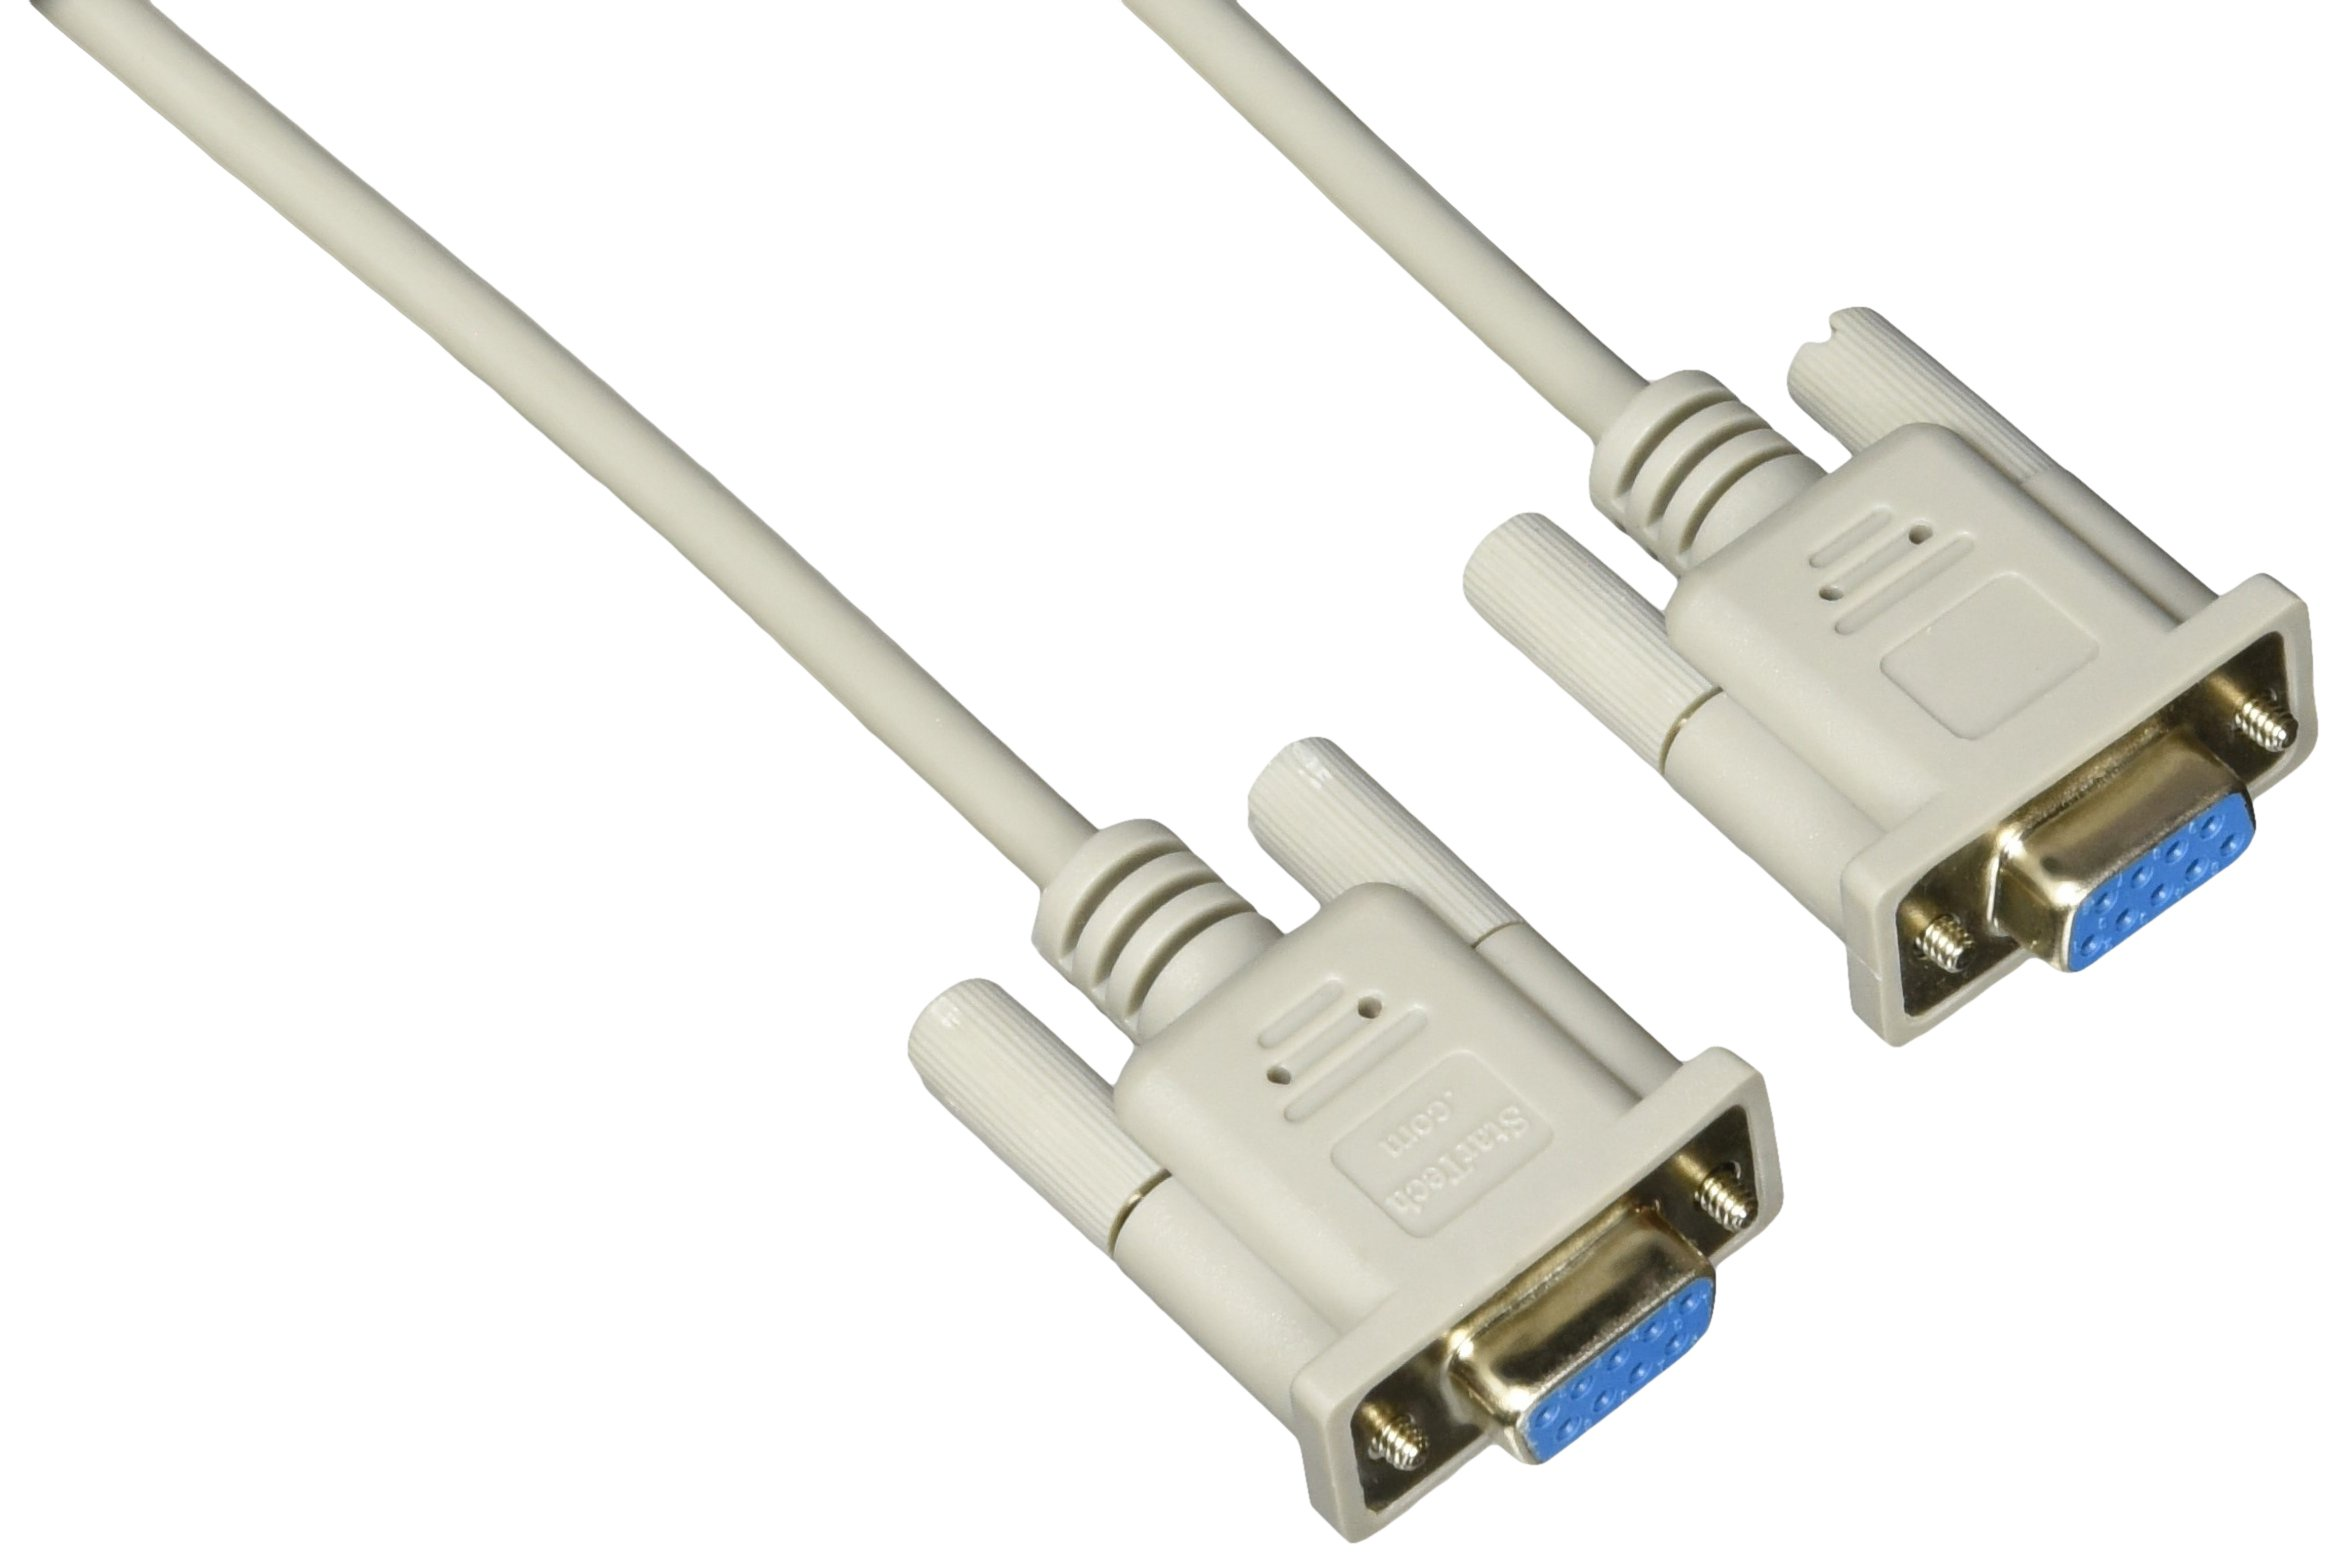 DB9 F//F Startech 6 ft Straight Through Serial Cable